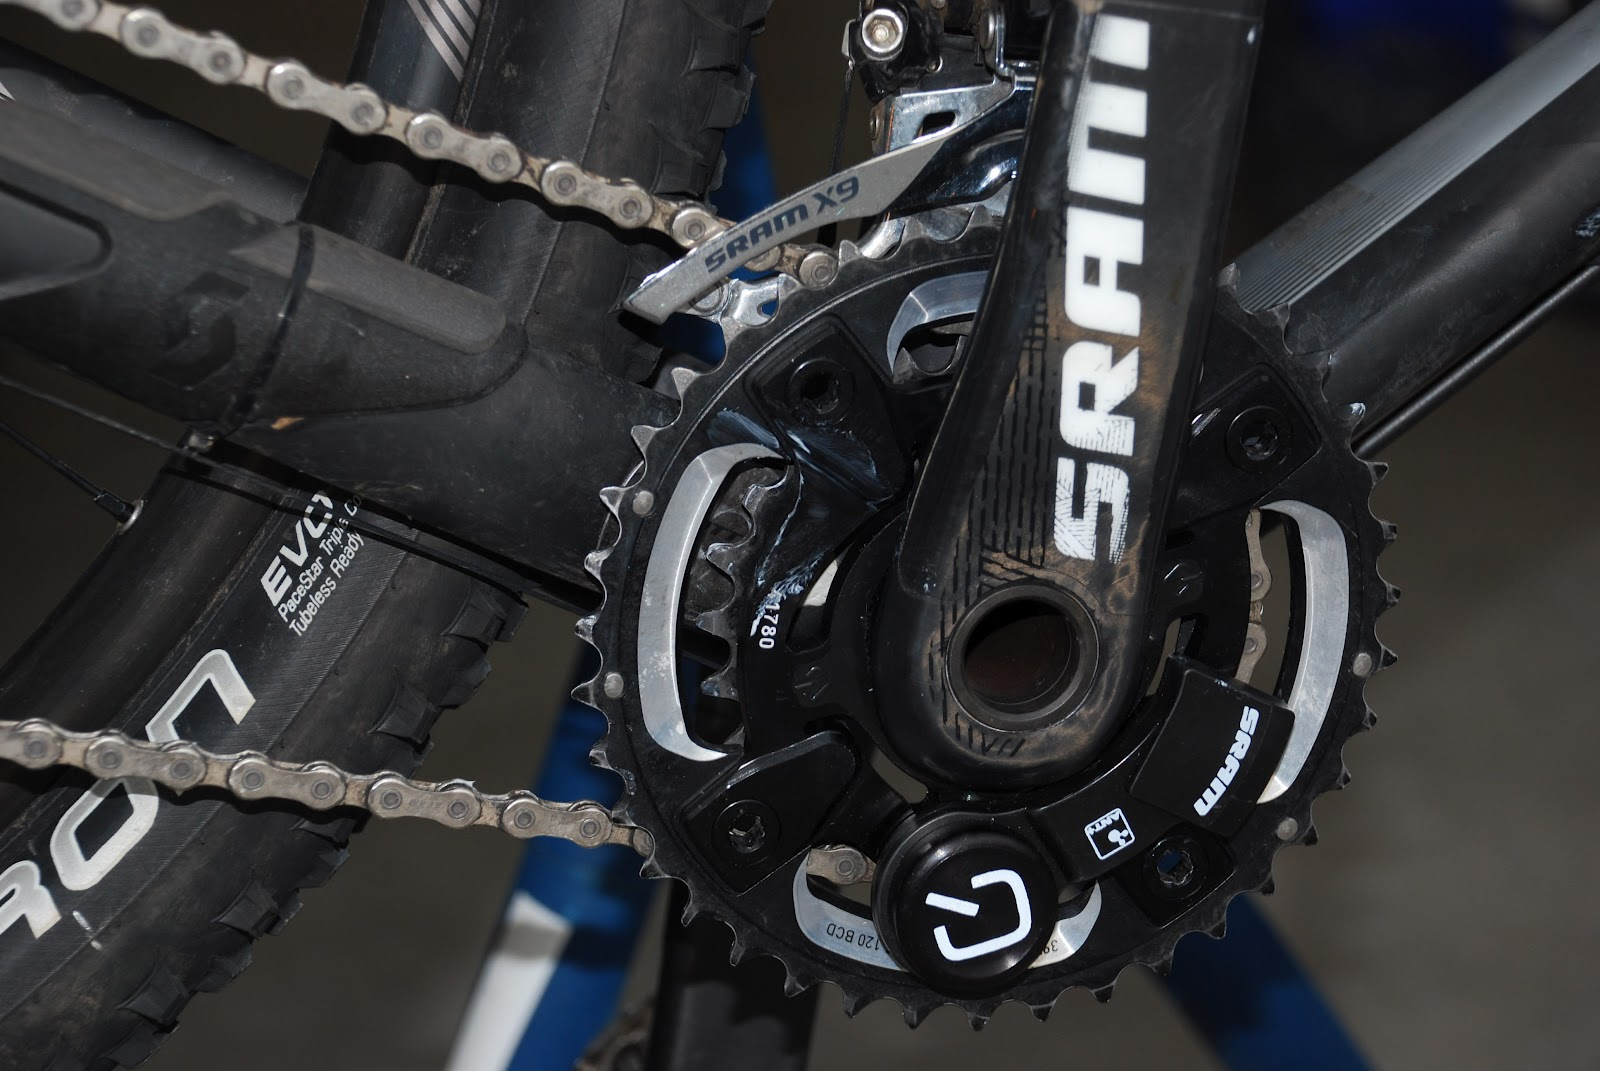 Tony S Cycling Blog Sram S2275 Mtb Quarq Power Meter Review